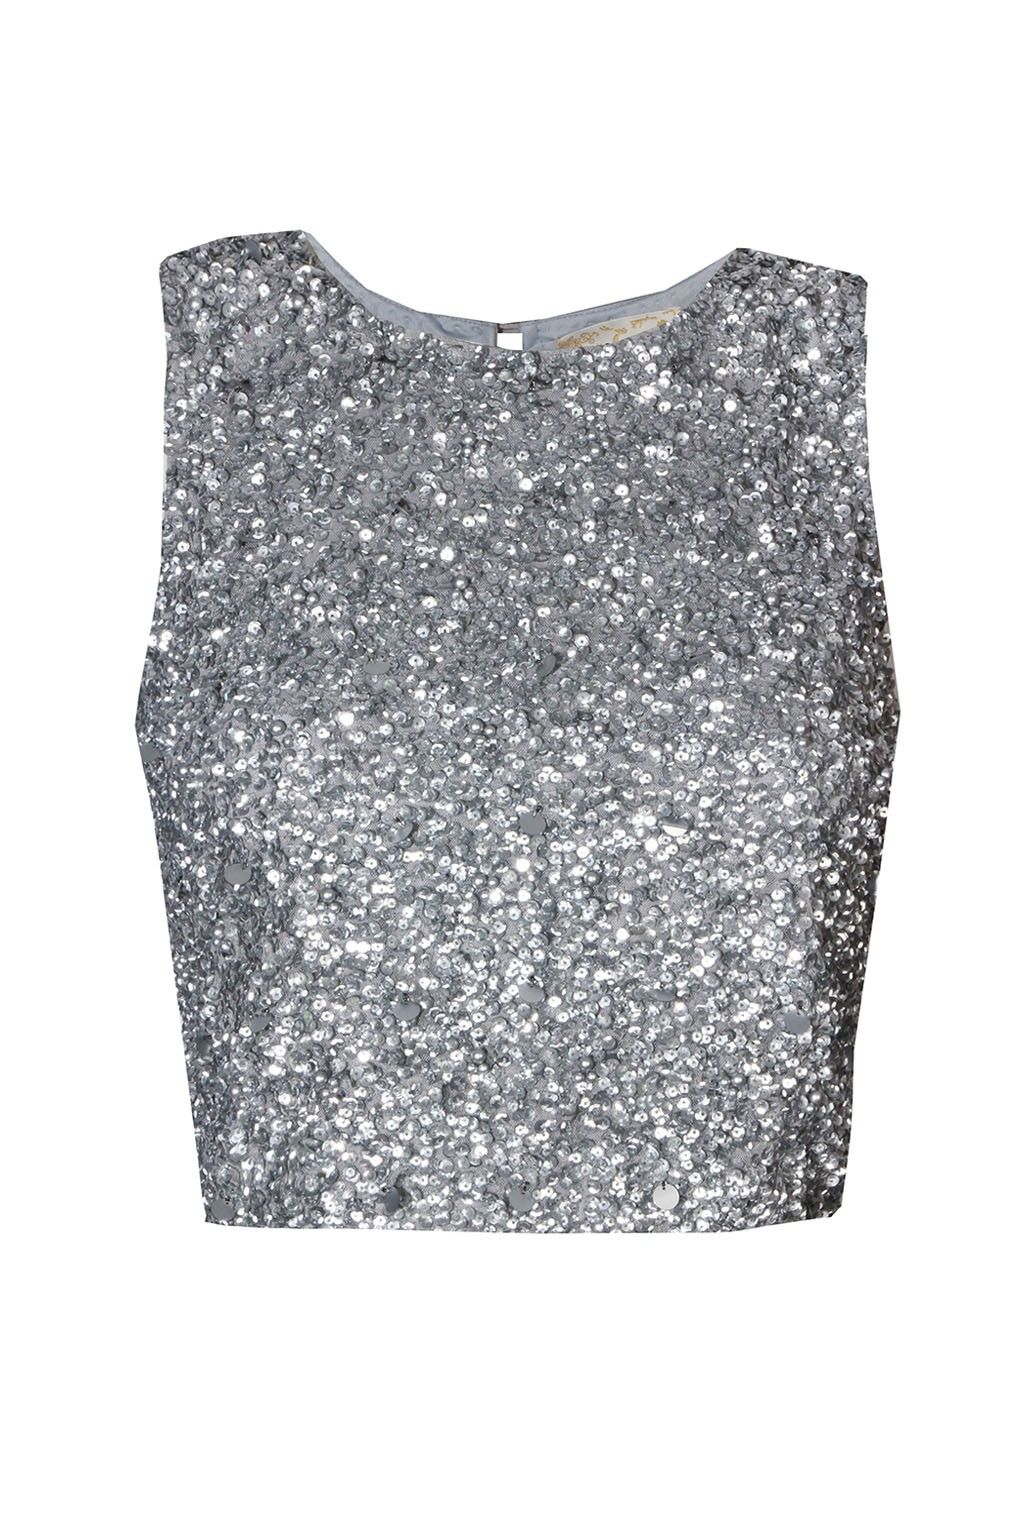 379ecf98e2778 Lace   Beads Picasso Sliver Sequin Top